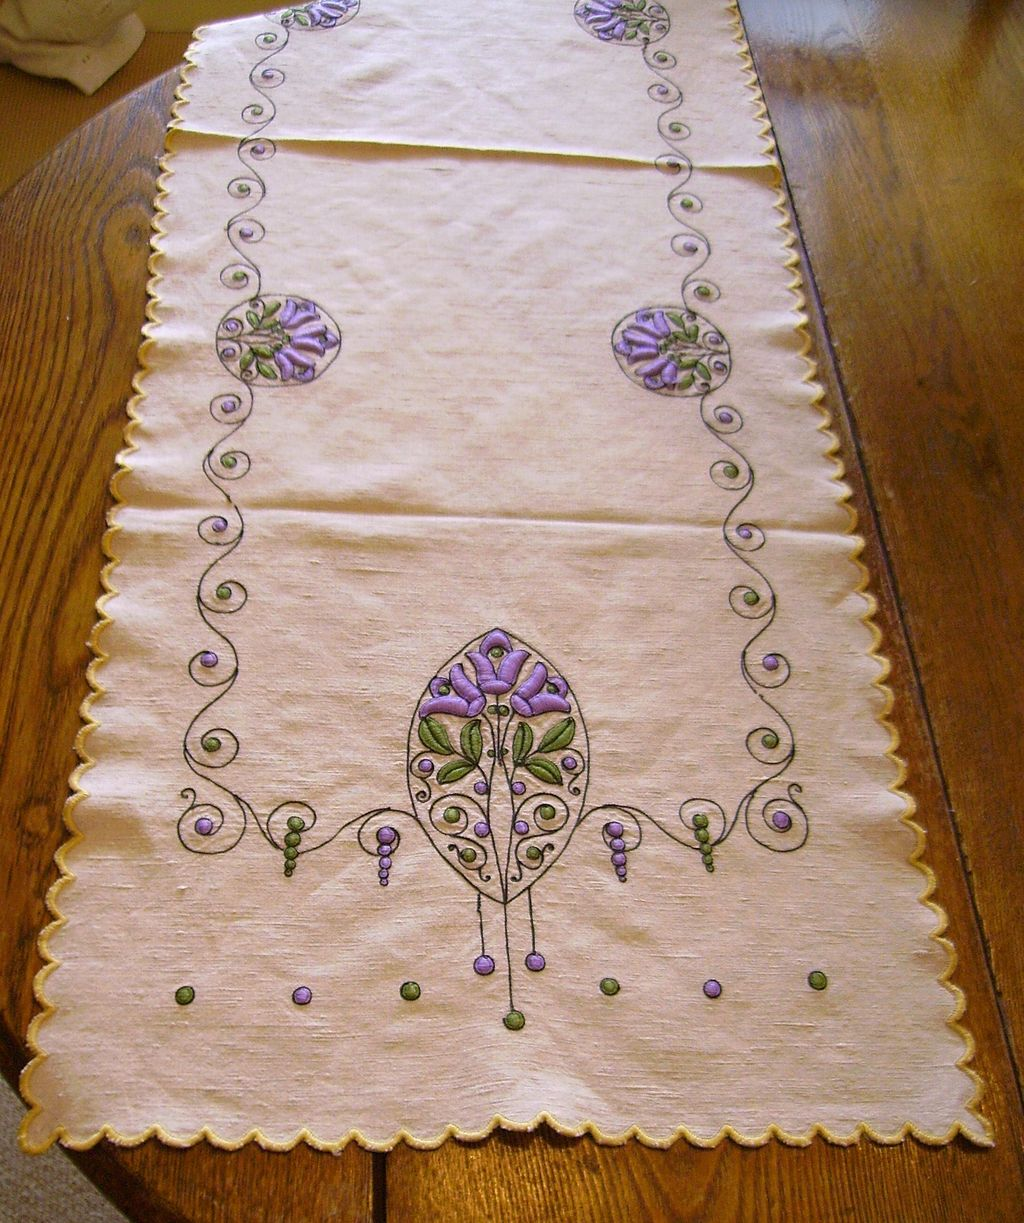 All hand embroidered arts crafts linen table runner 52 5 for Table runners 52 inches